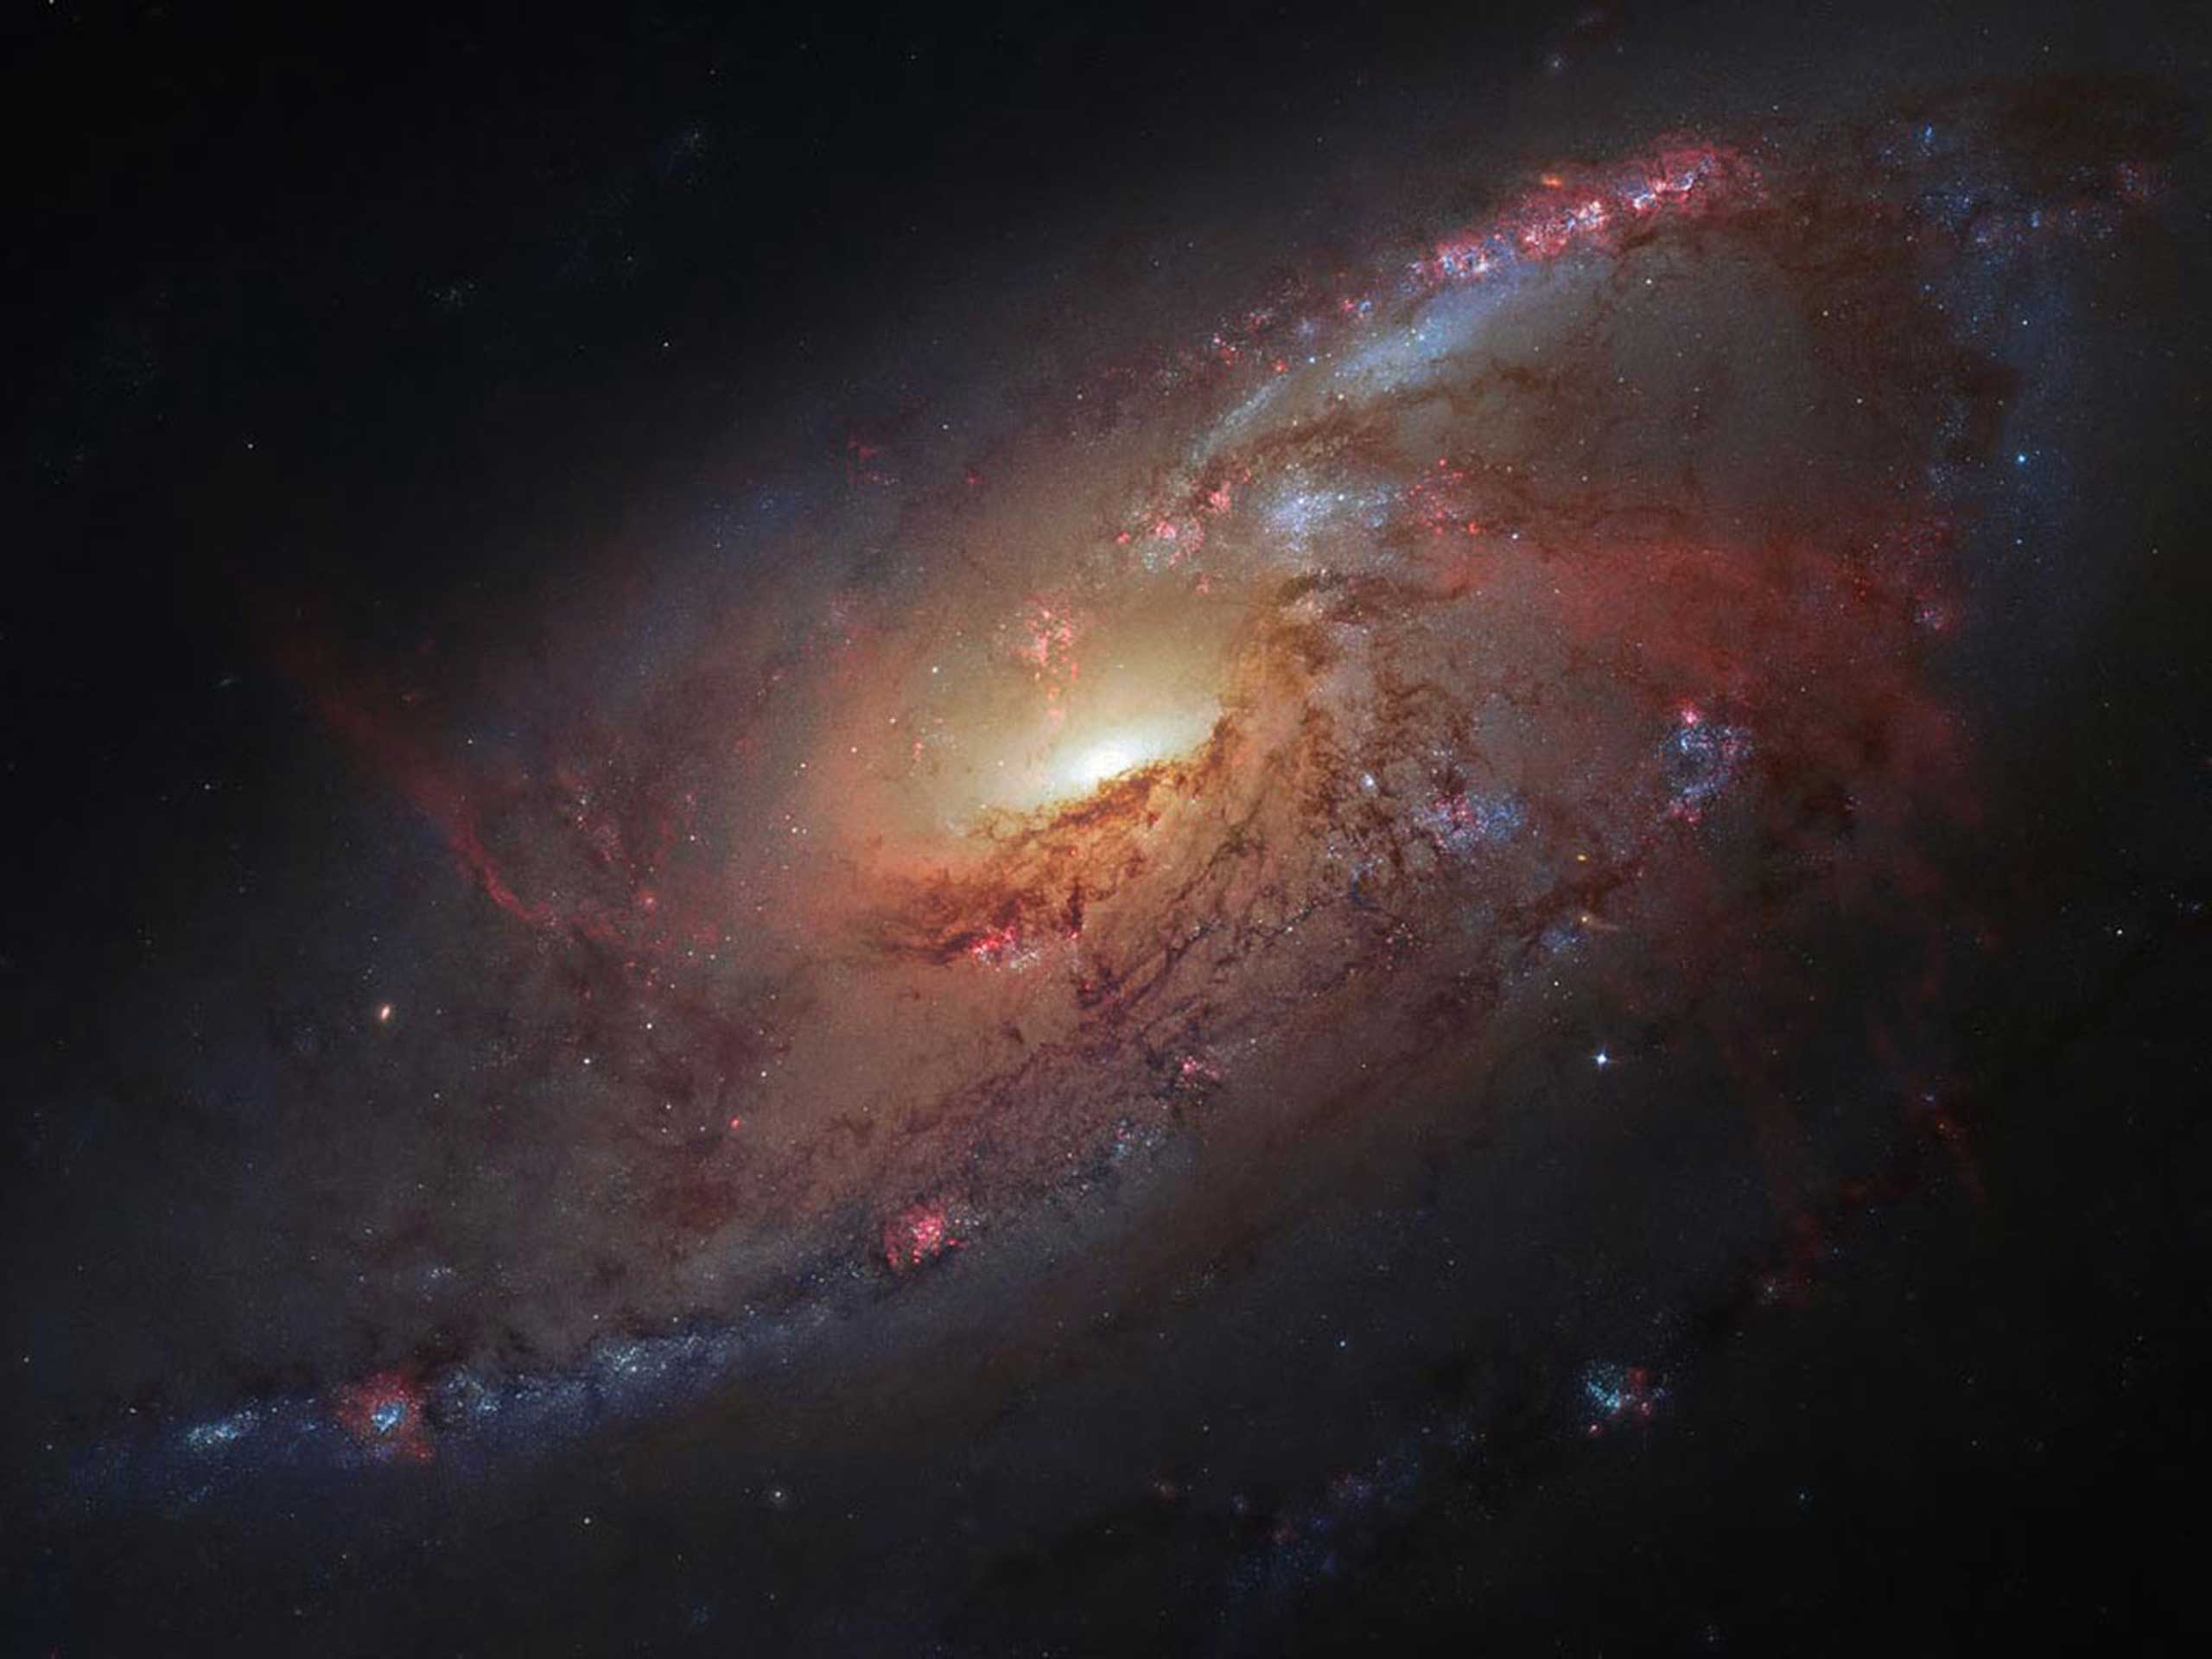 This image combines Hubble Space telescope observations of the M 106 galaxy with additional information captured by amateur astronomers Robert Gendler and Jay GaBany.